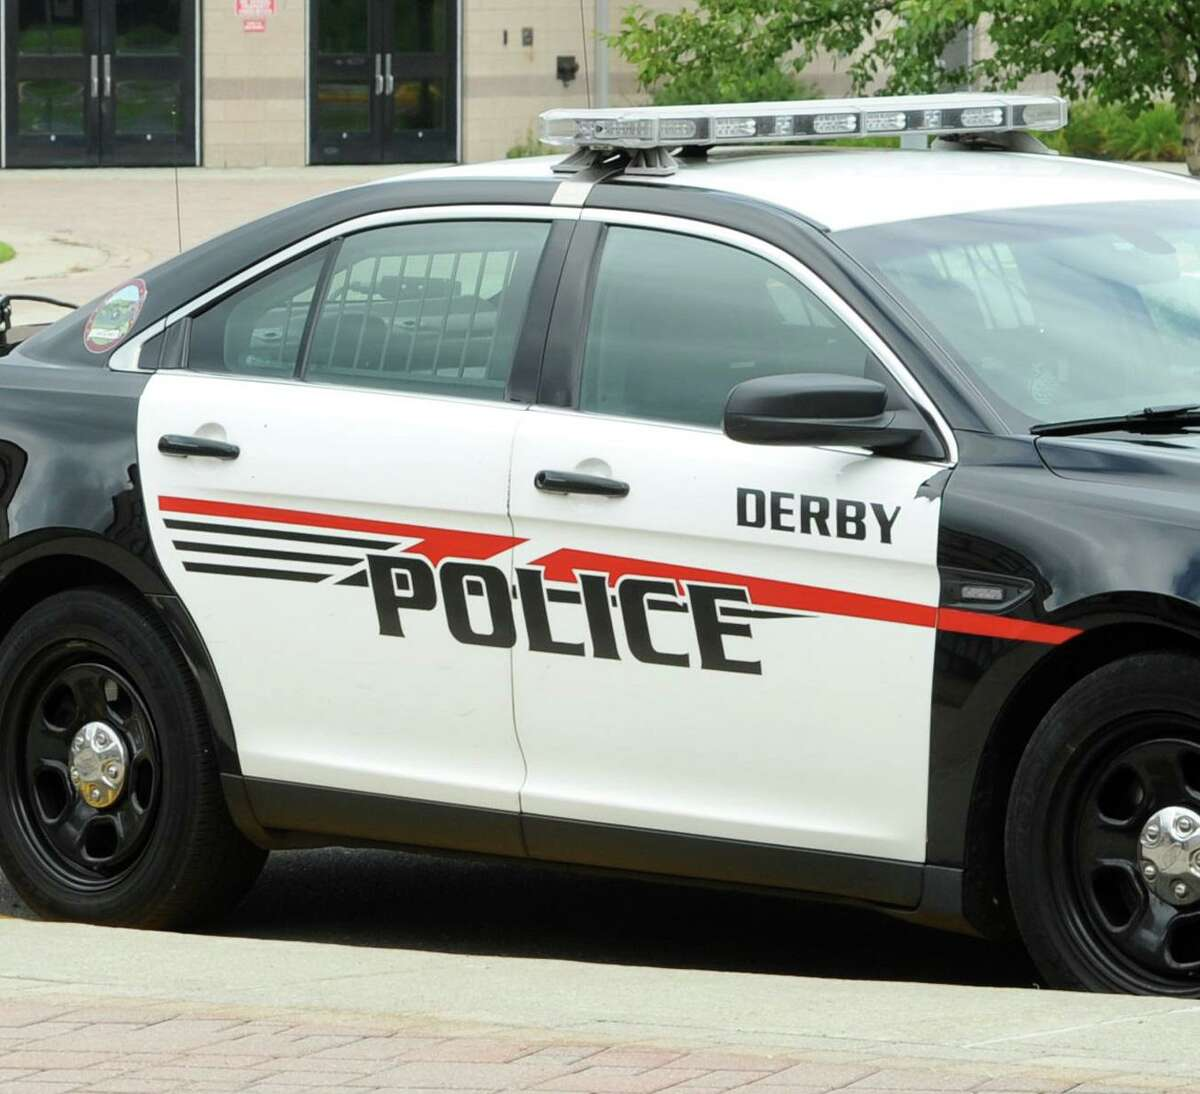 Derby police carin Derby, Conn. on Monday August 20, 2018.